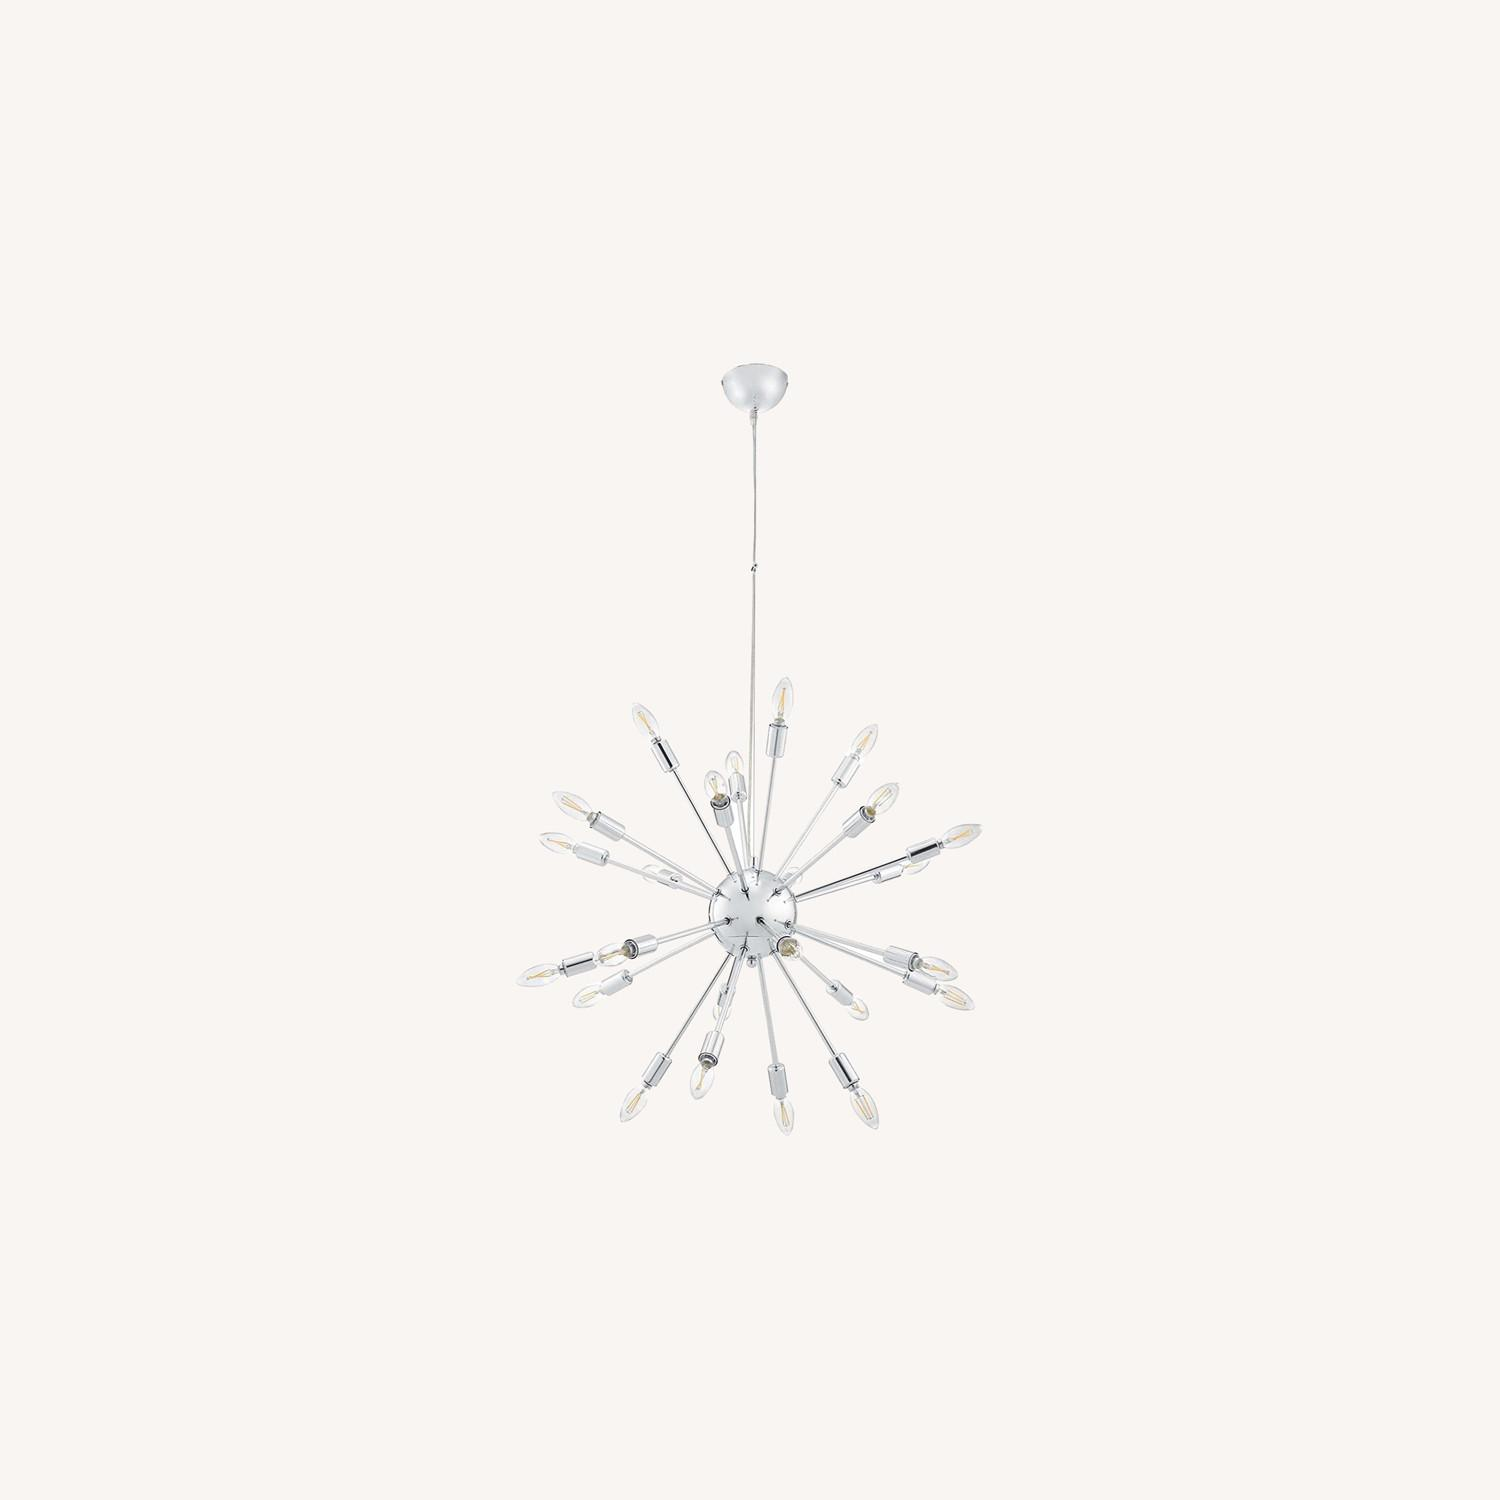 Modern Chandelier In Chrome-Plated Steel - image-5